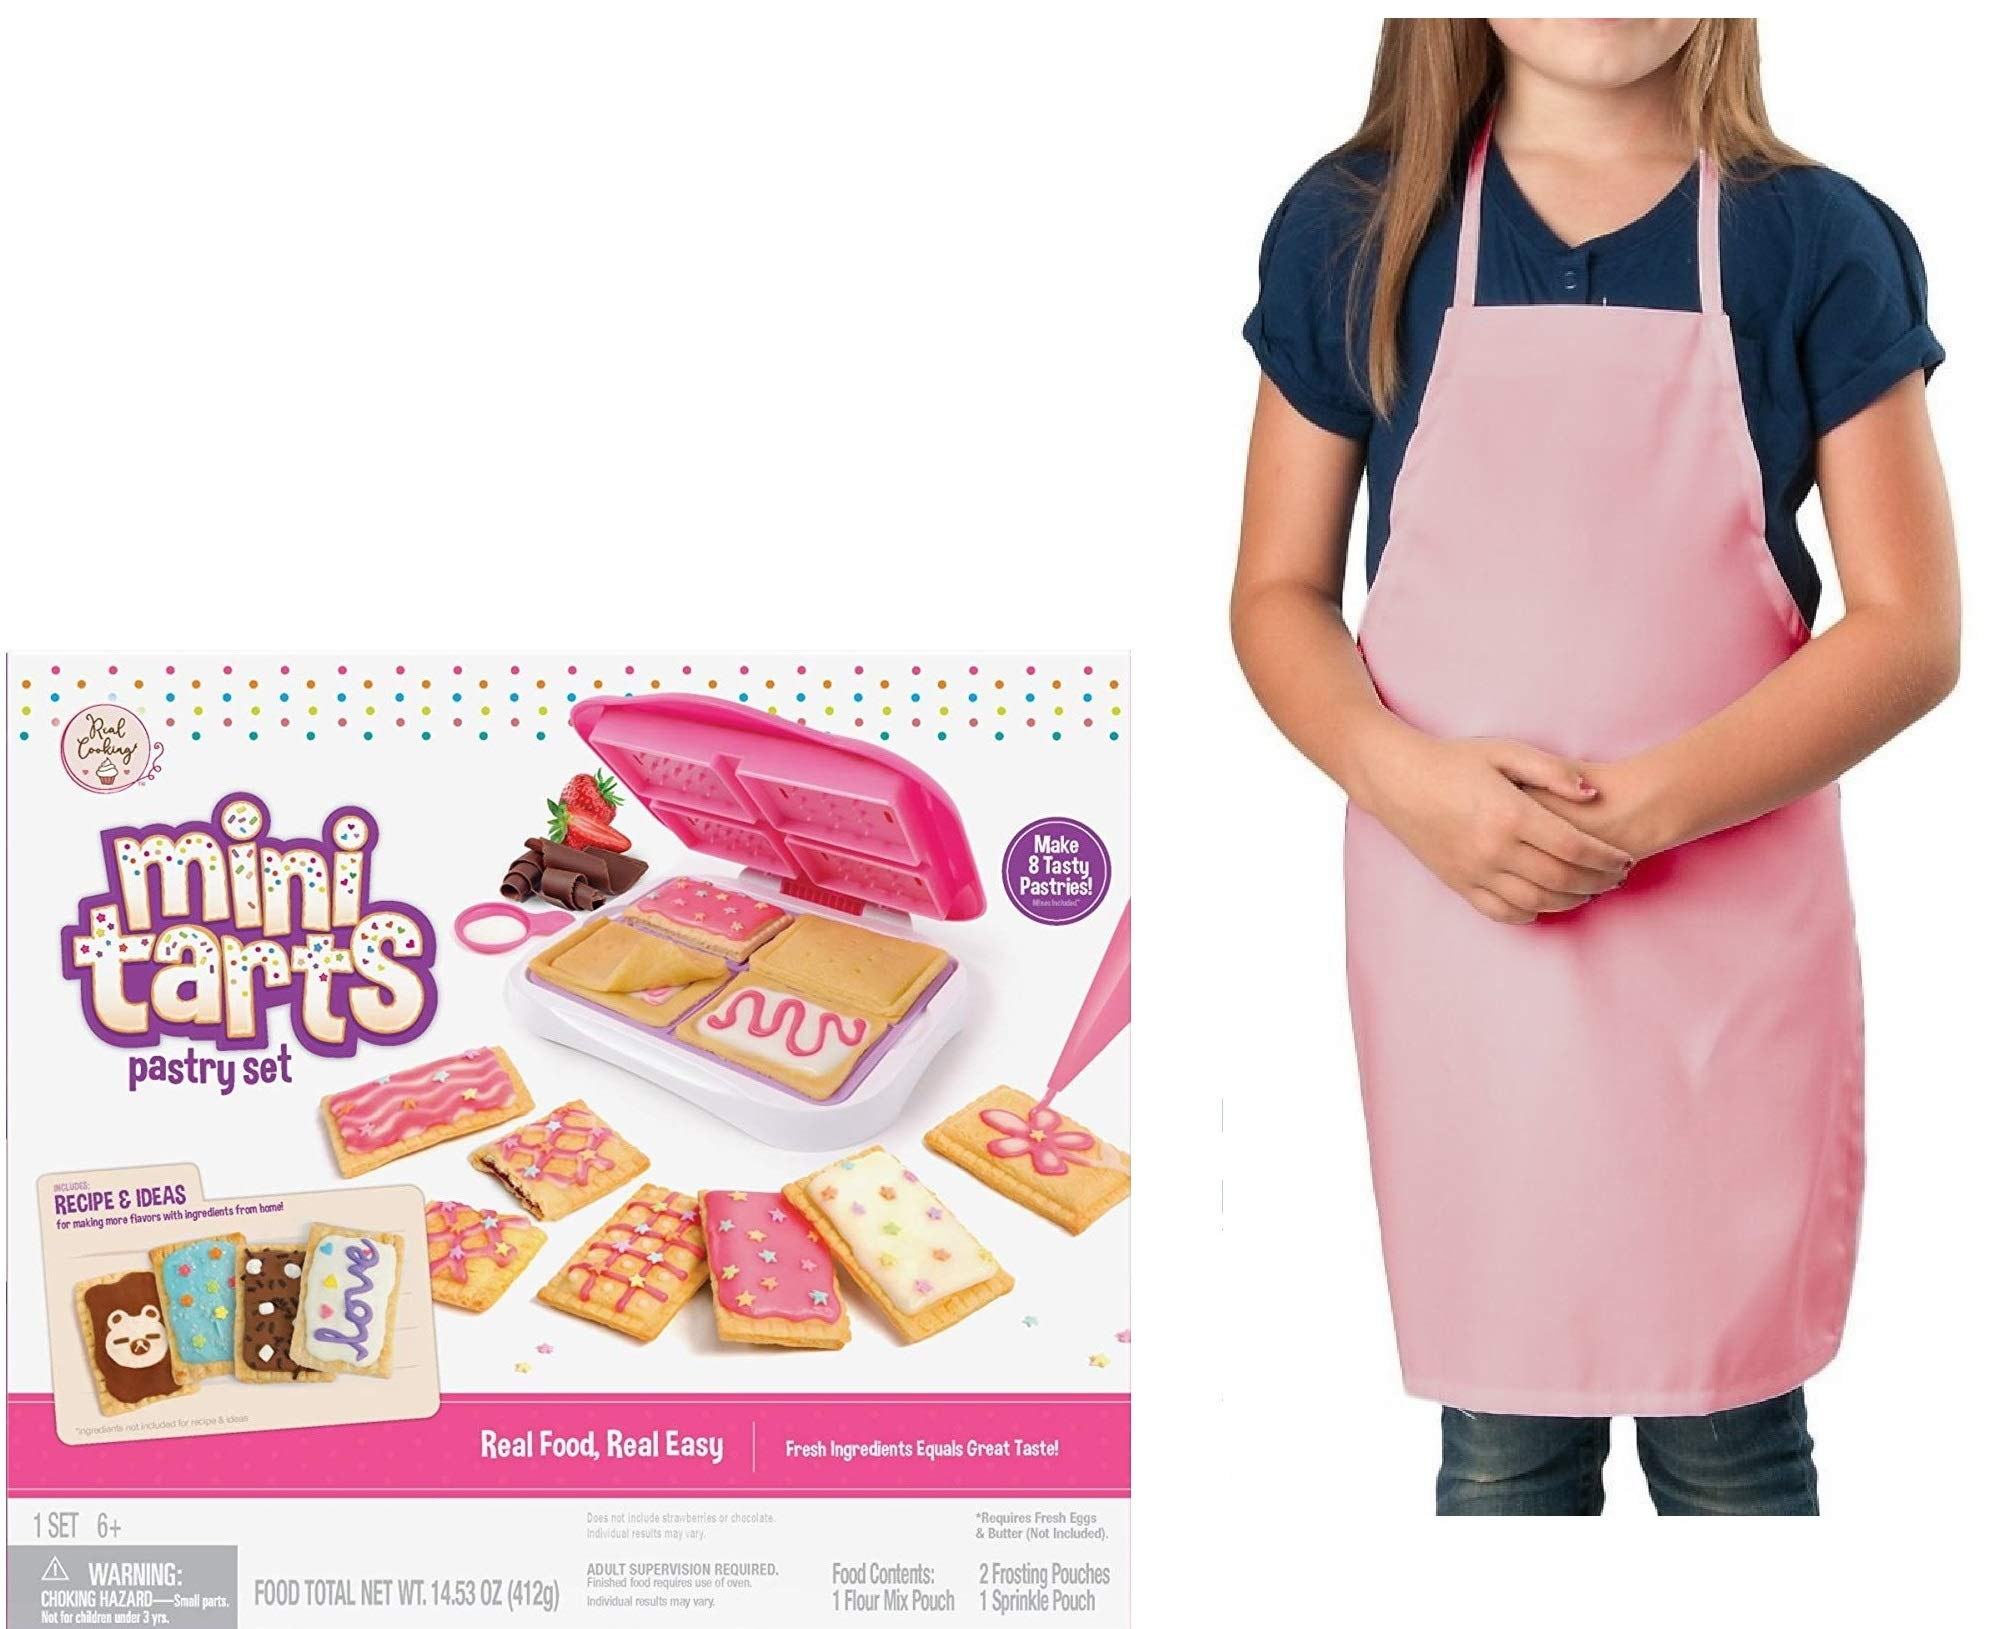 My Favorite Toys Mini Tarts Pastry Making Set for Kids - Make Tarts, Pop in The Oven and Enjoy